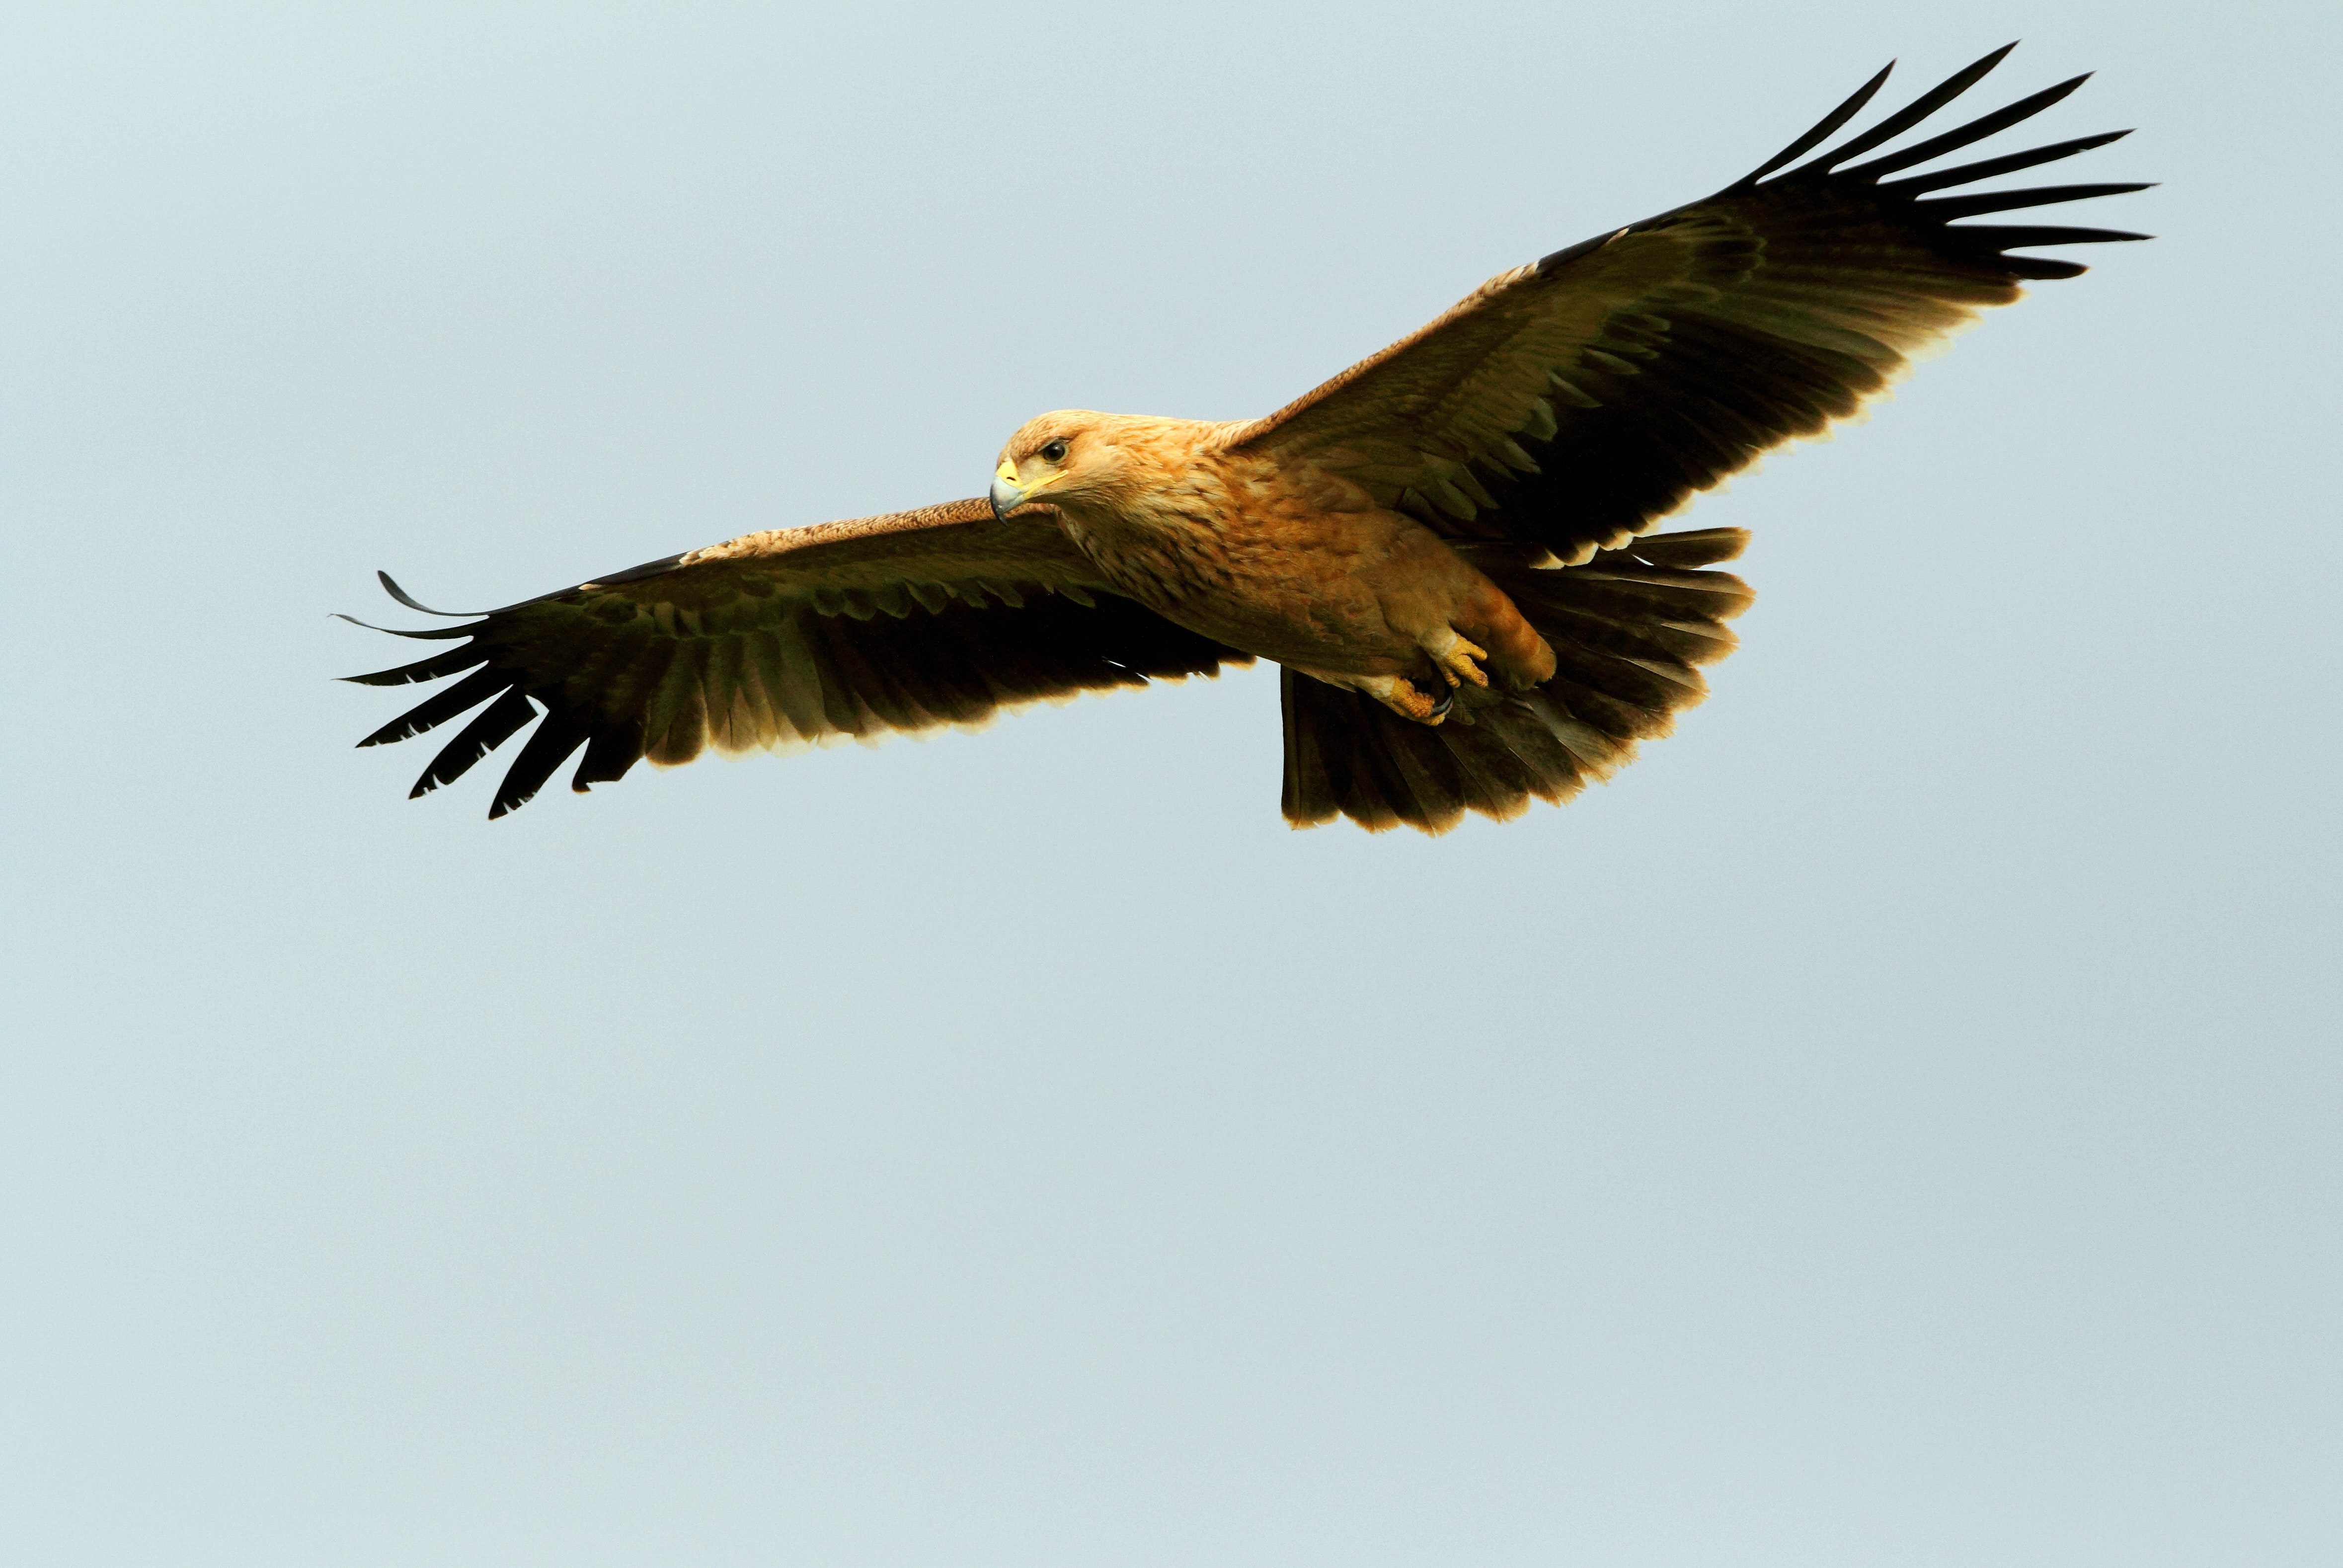 A spanish eagle soars in the sky.